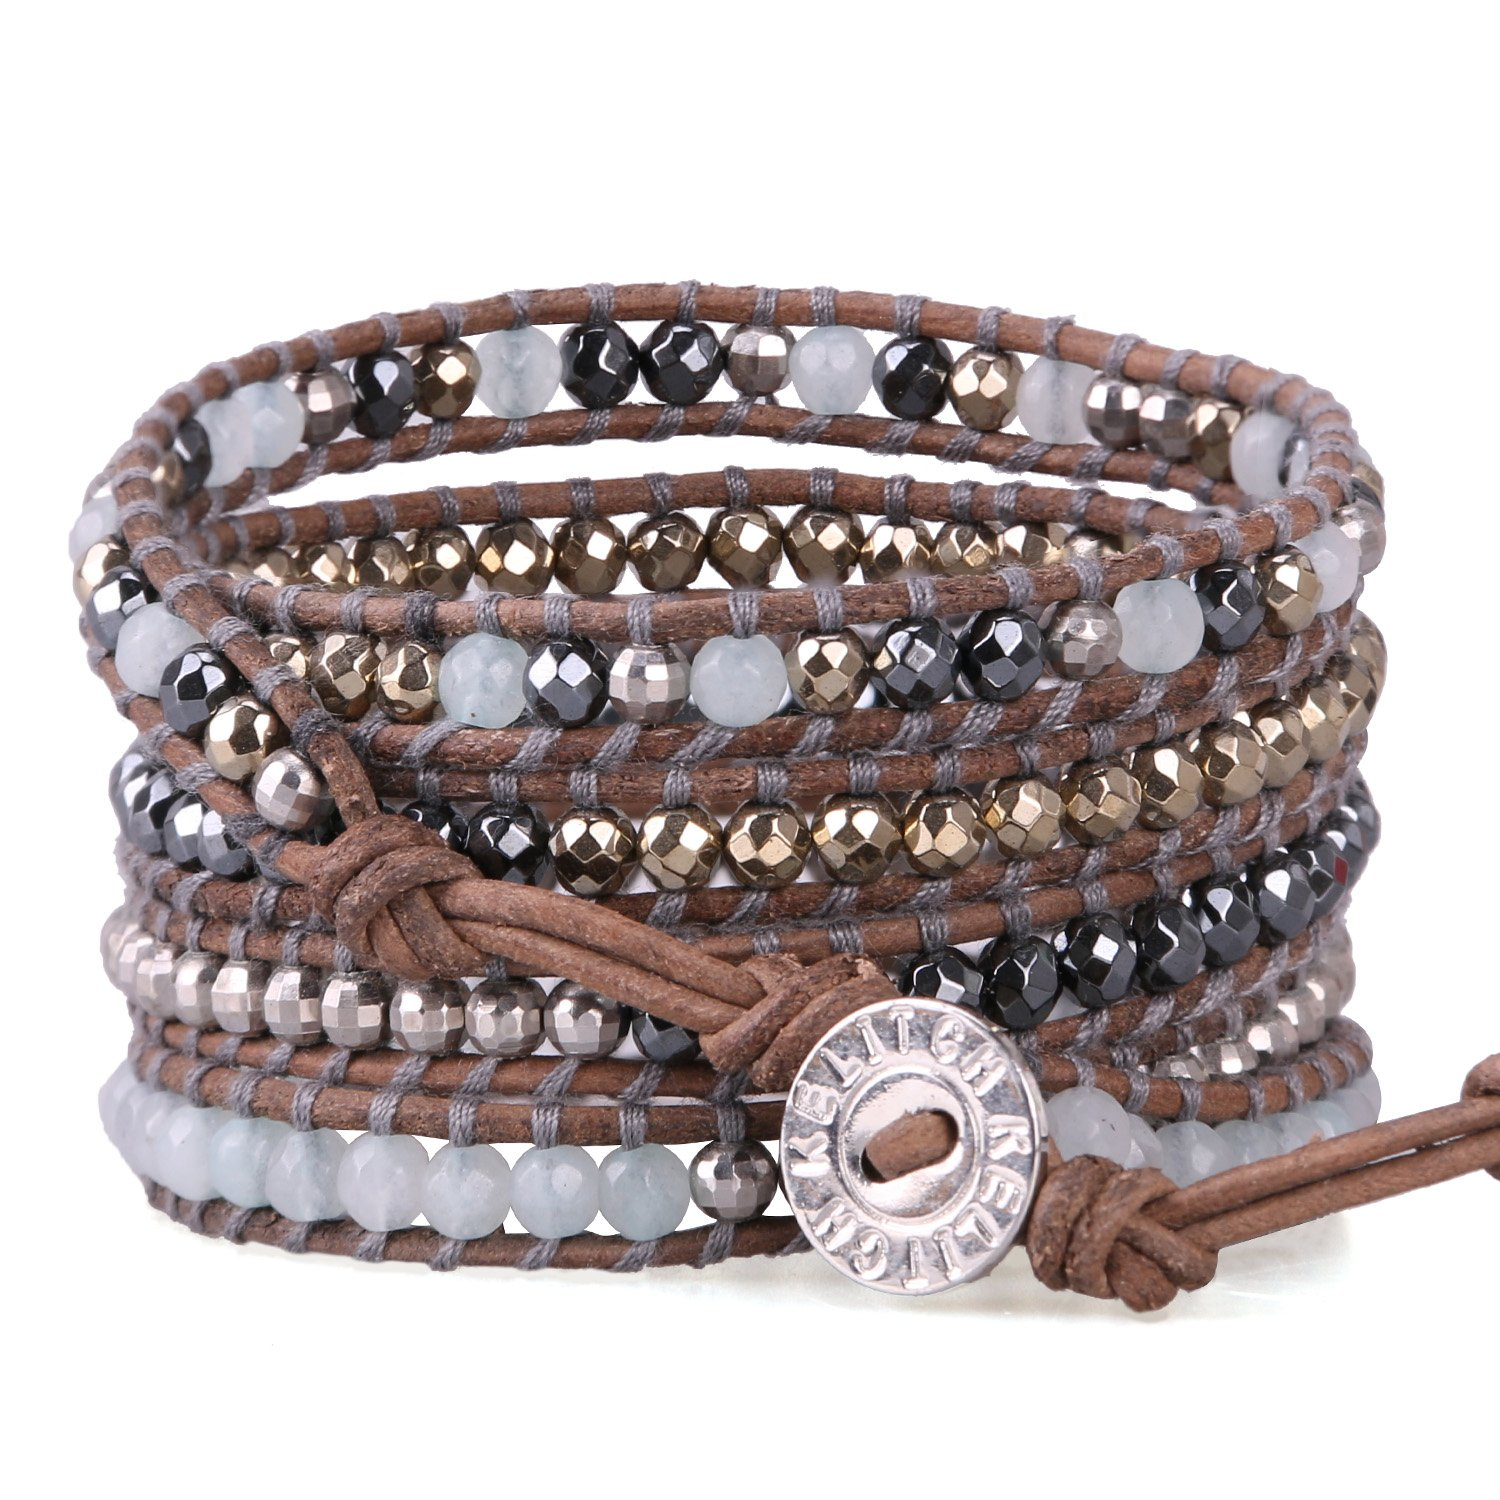 KELITCH Mix Beaded Bracelet on Leather Charming 5 Wrap Bracelet Handmade New Top Jewelry (Grey Brown)